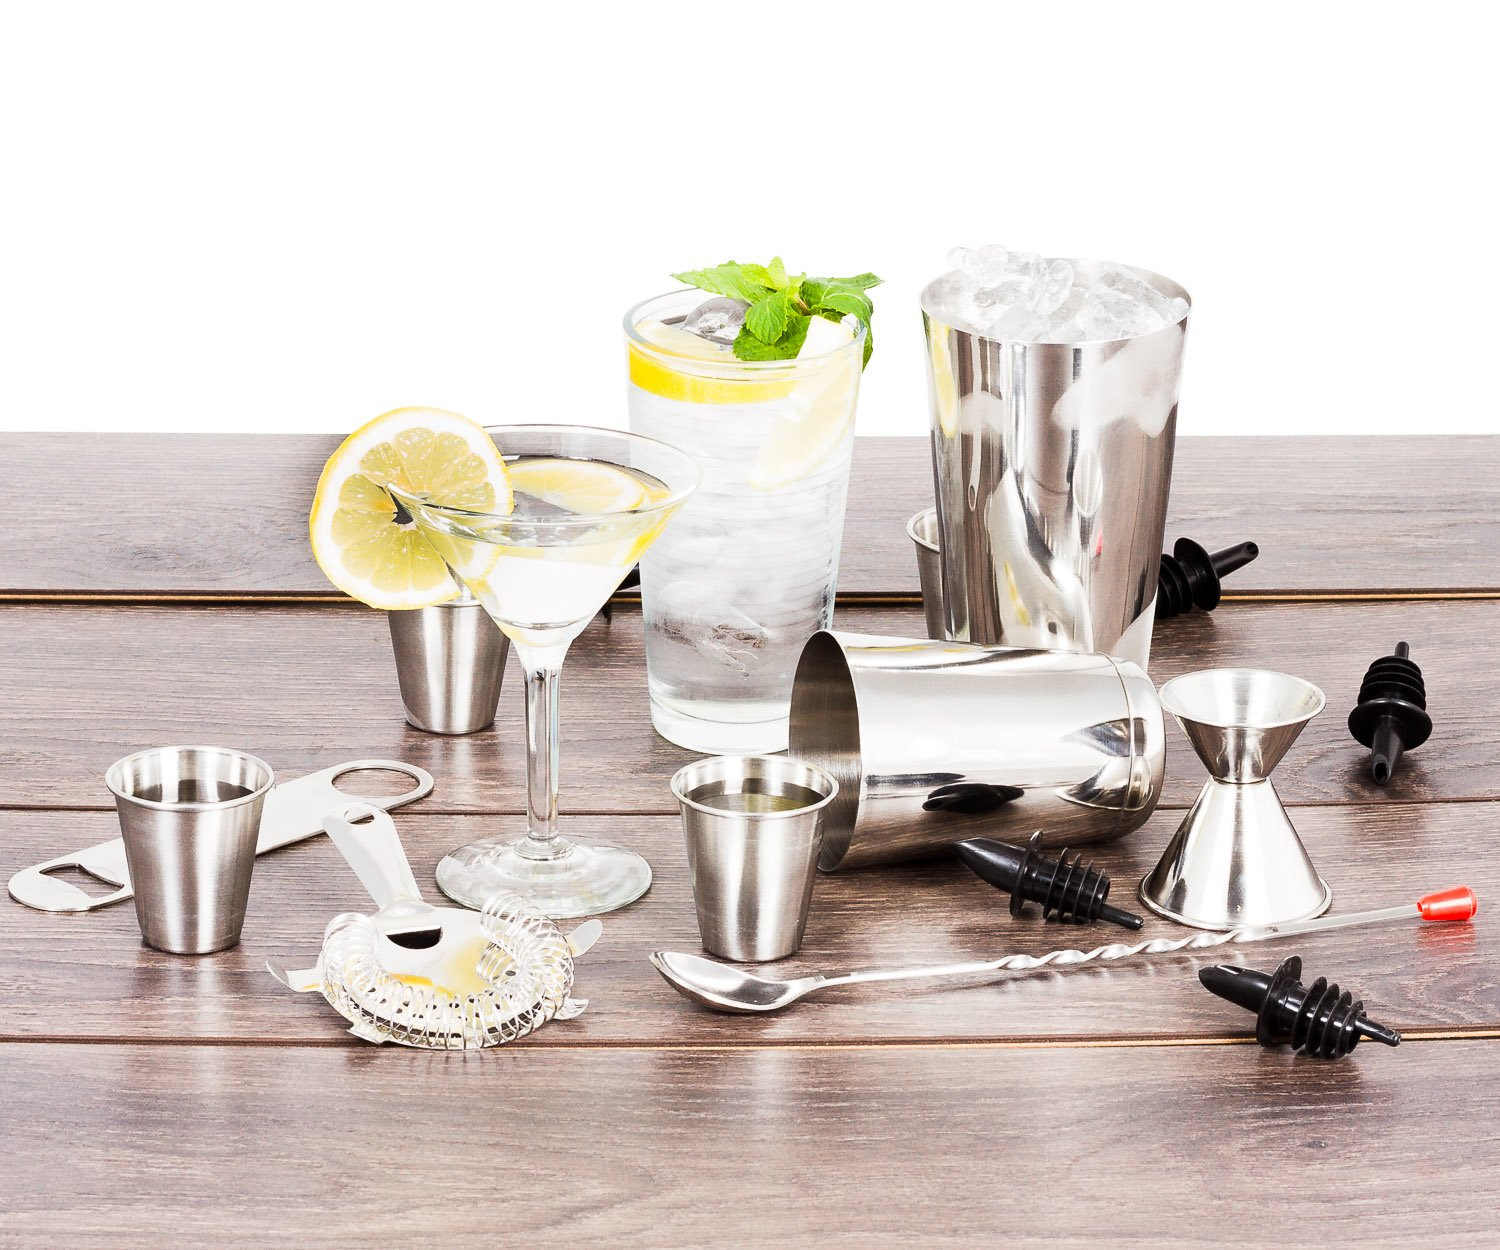 16 Pcs Cocktail Shaker Home Bar Set – Complete Bartender Kit with Double Bar Jigger, Pour Spouts, Drink Shaker, Hawthorne Strainer, Bar Spoon, Bottle Opener and Tin Shot Glasses by Lexi Home (Image #2)